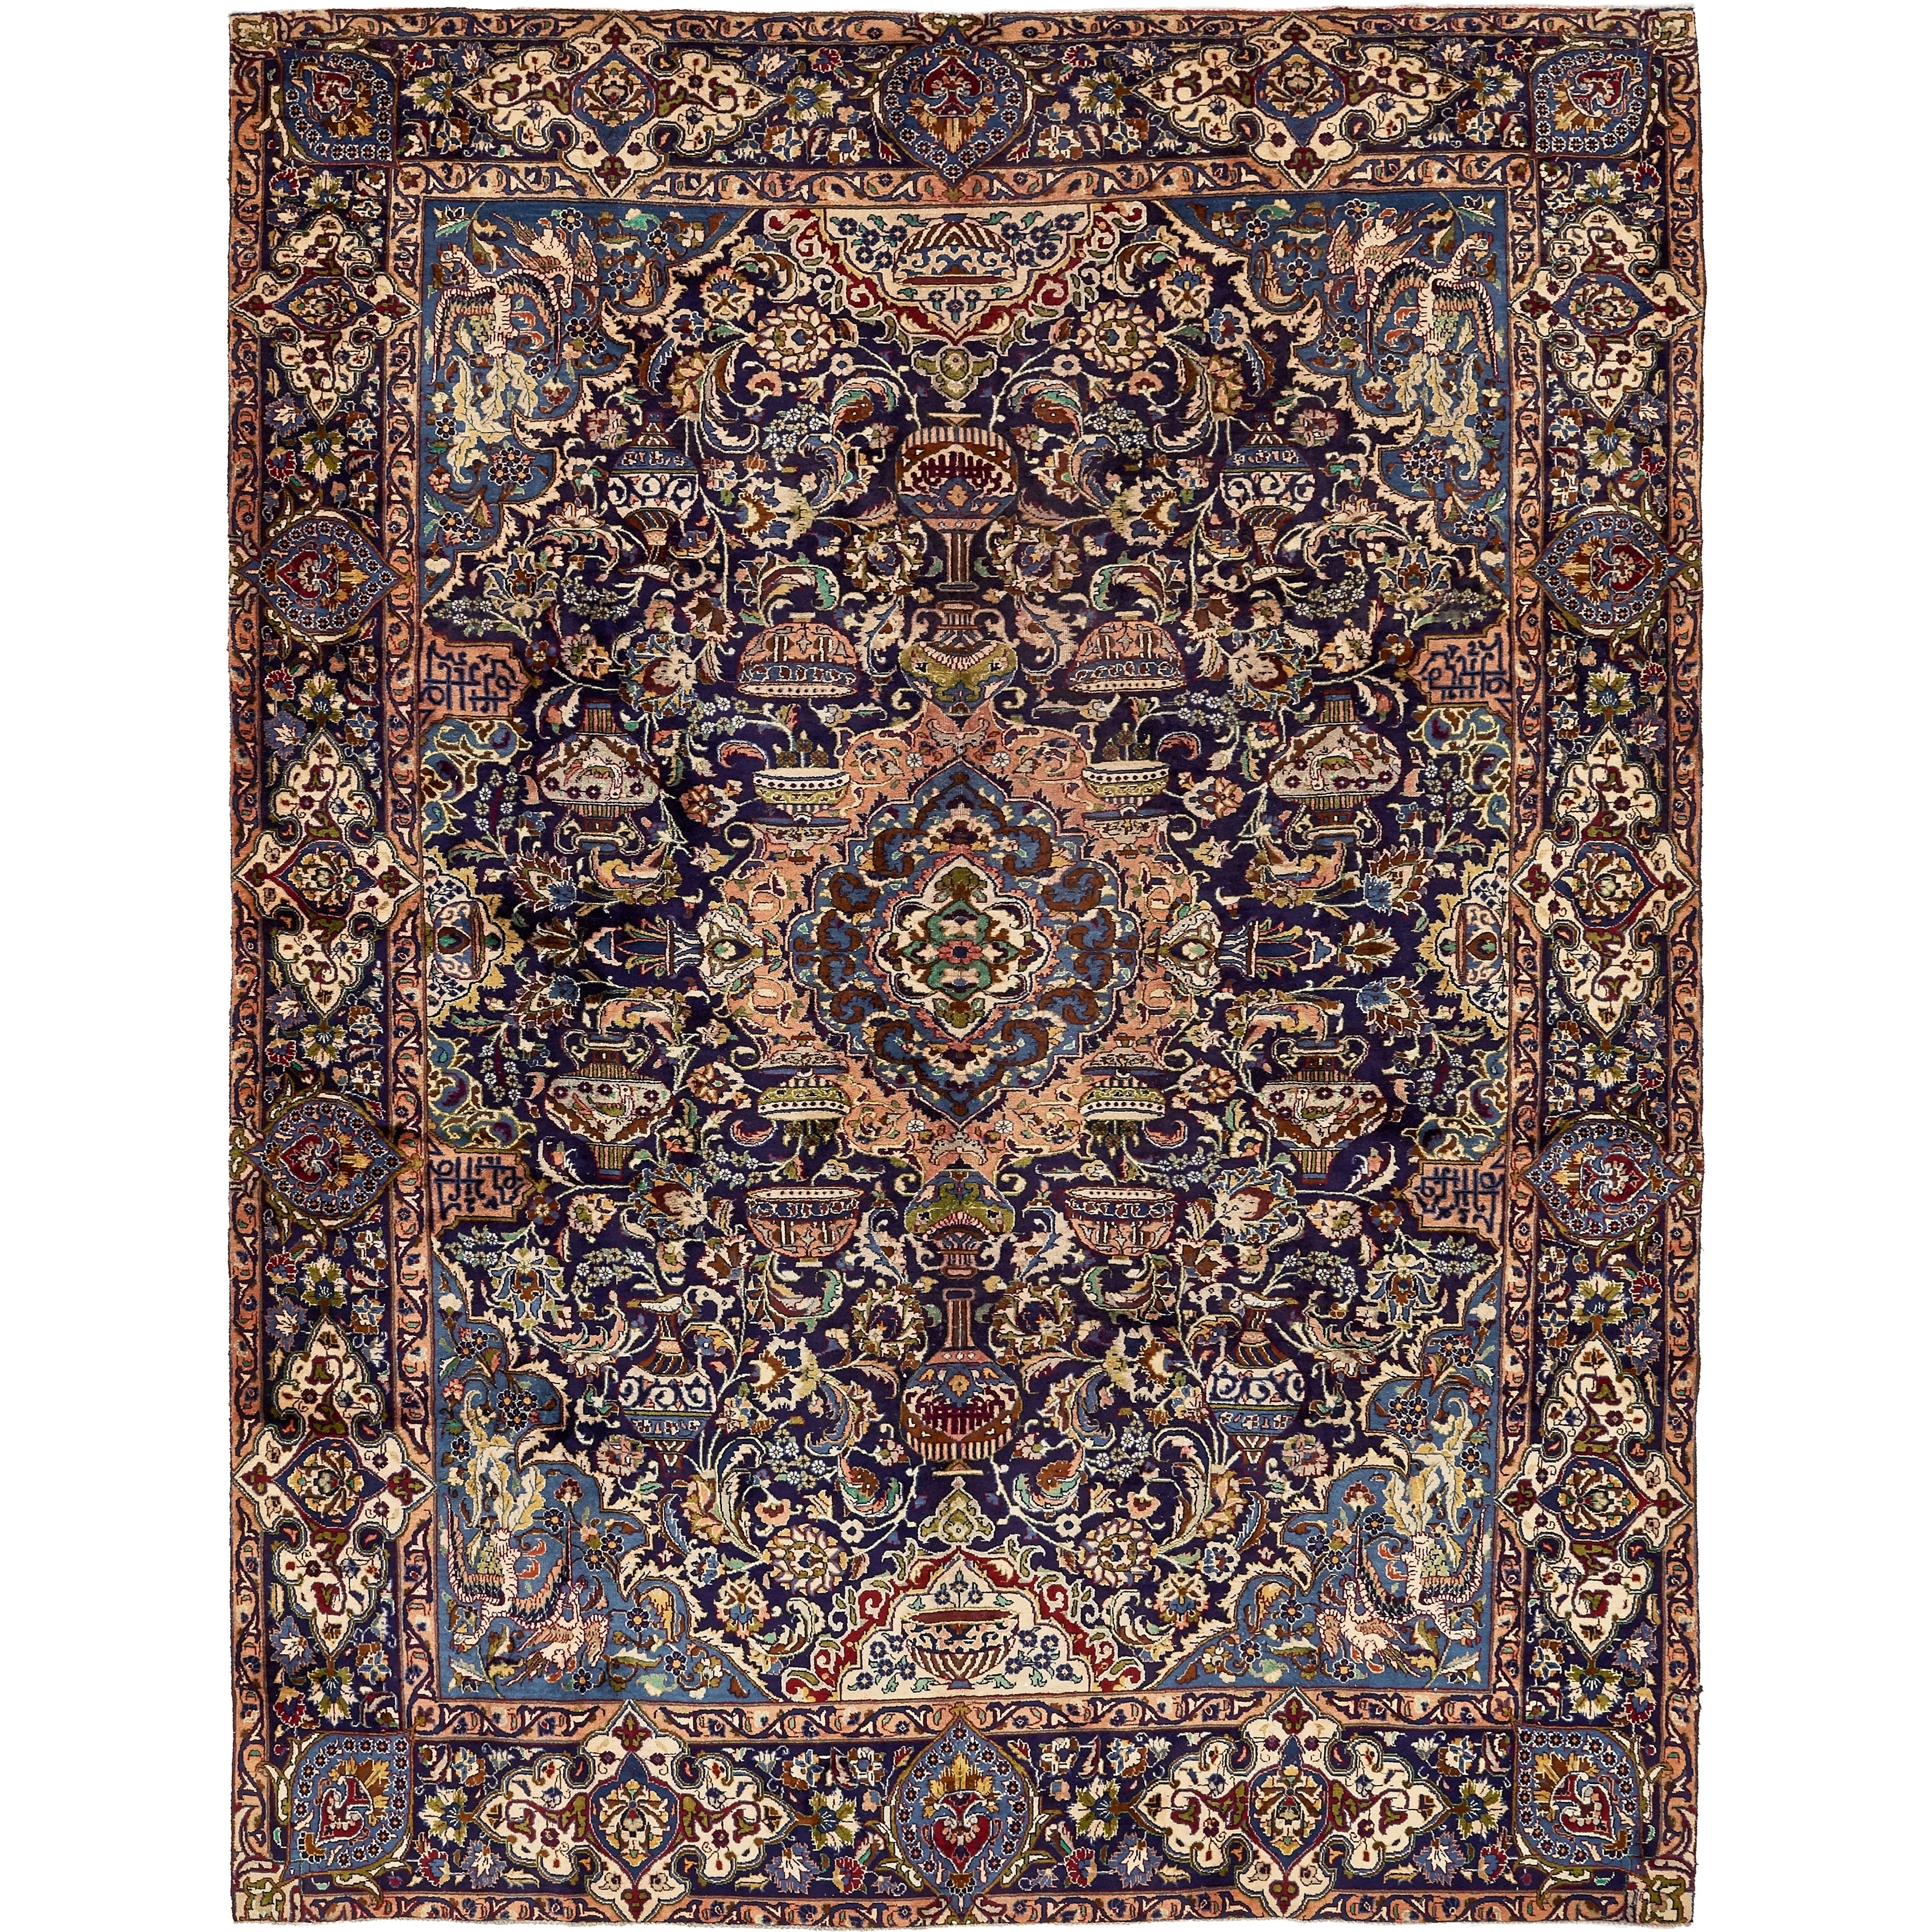 Hand Knotted Kashmar Semi Antique Wool Area Rug - 9 1 x 11 11 (Navy blue - 9 1 x 11 11)